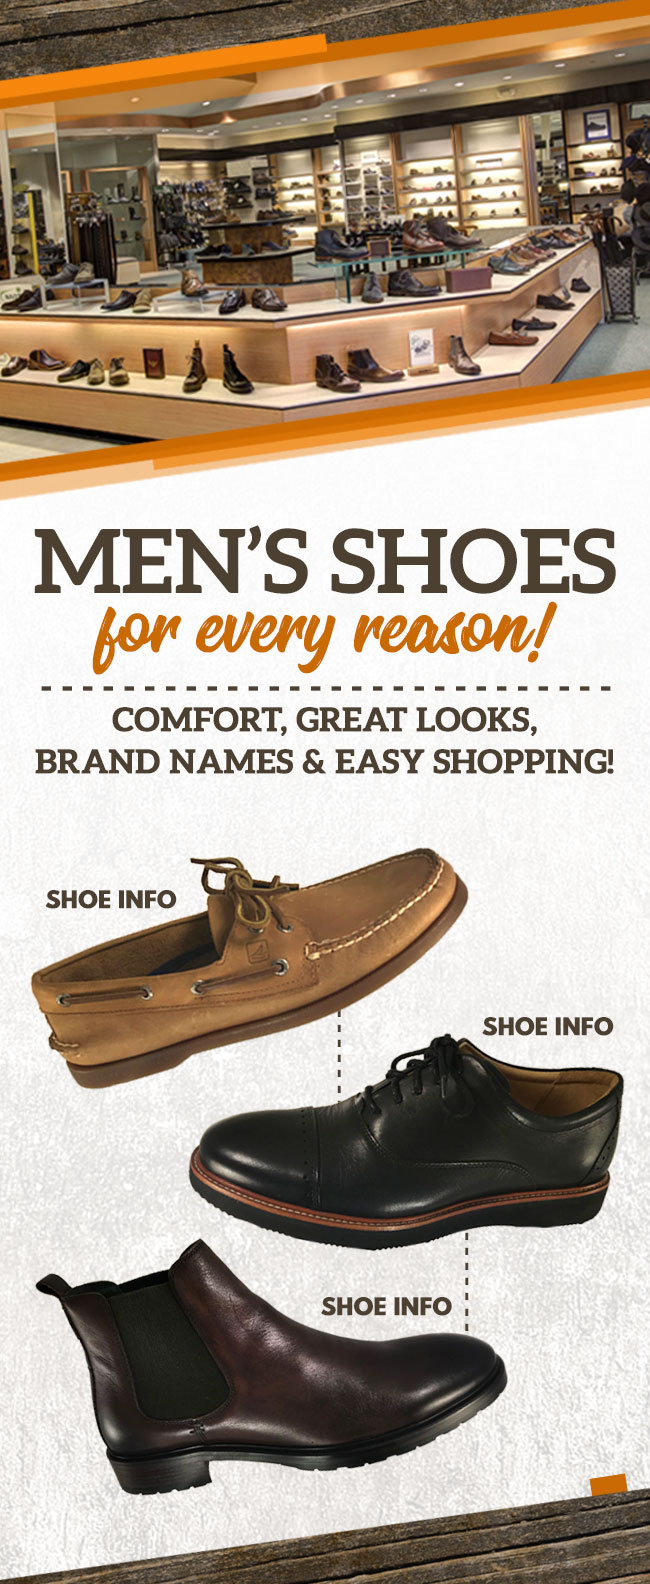 Mens-Shoes_Graphic.jpg